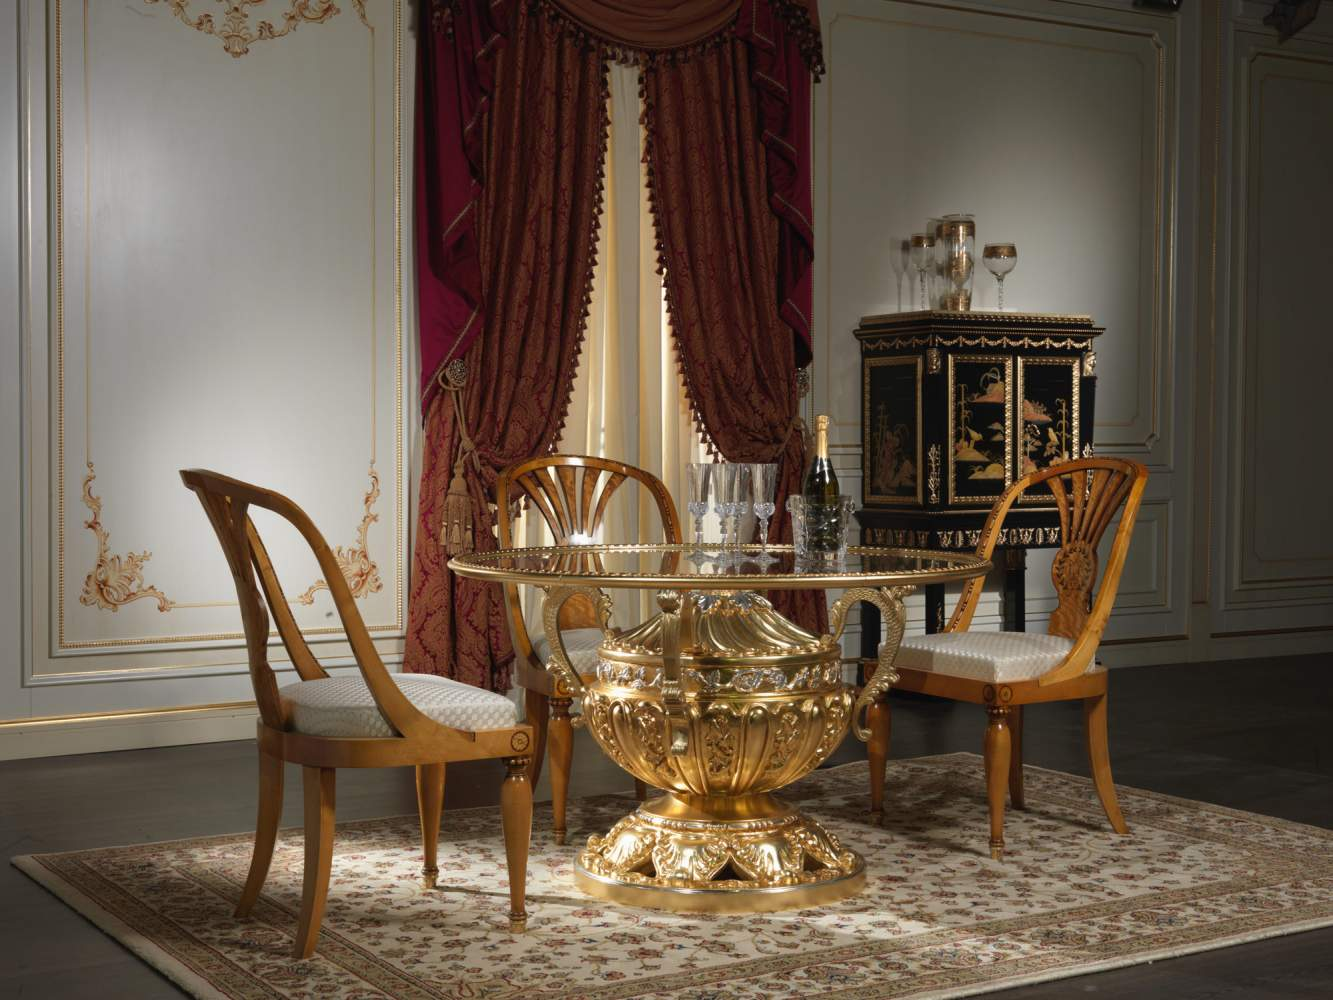 Furniture for dining room made in Italy